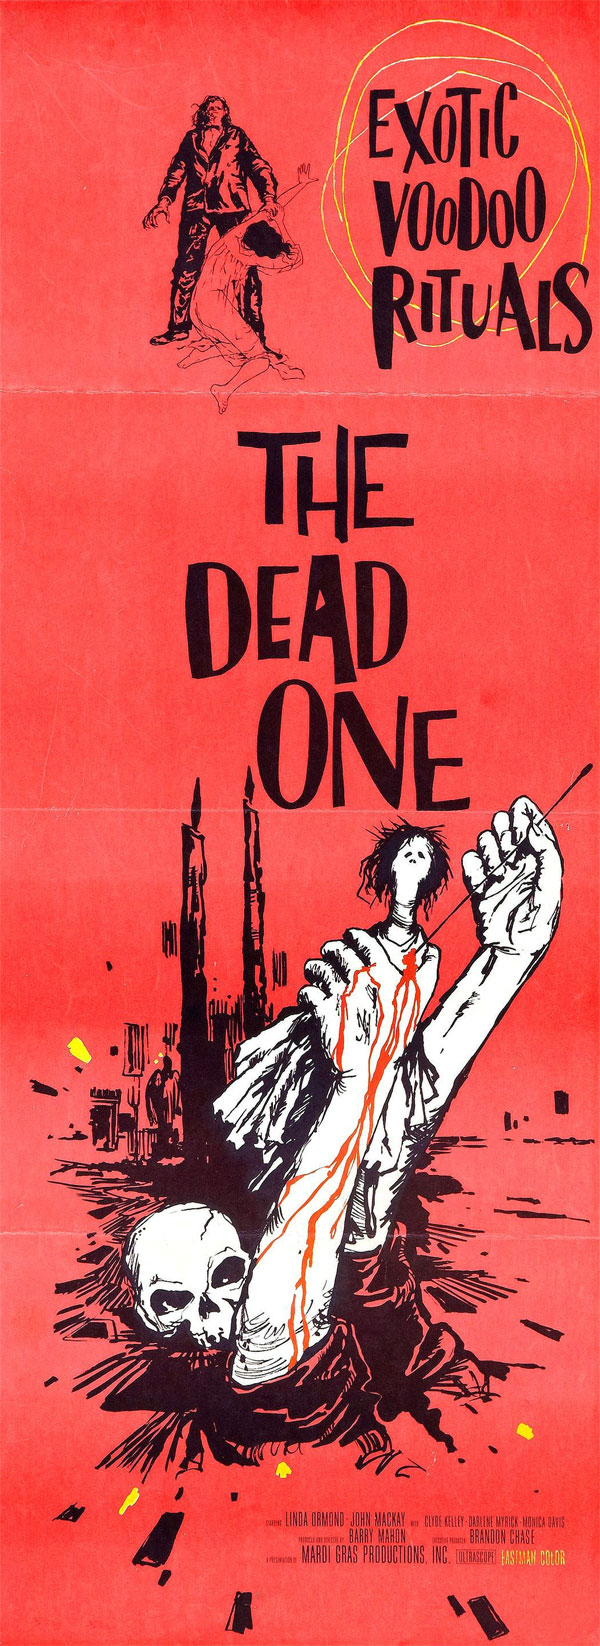 Cartaz de filme de zumbi - The Dead One